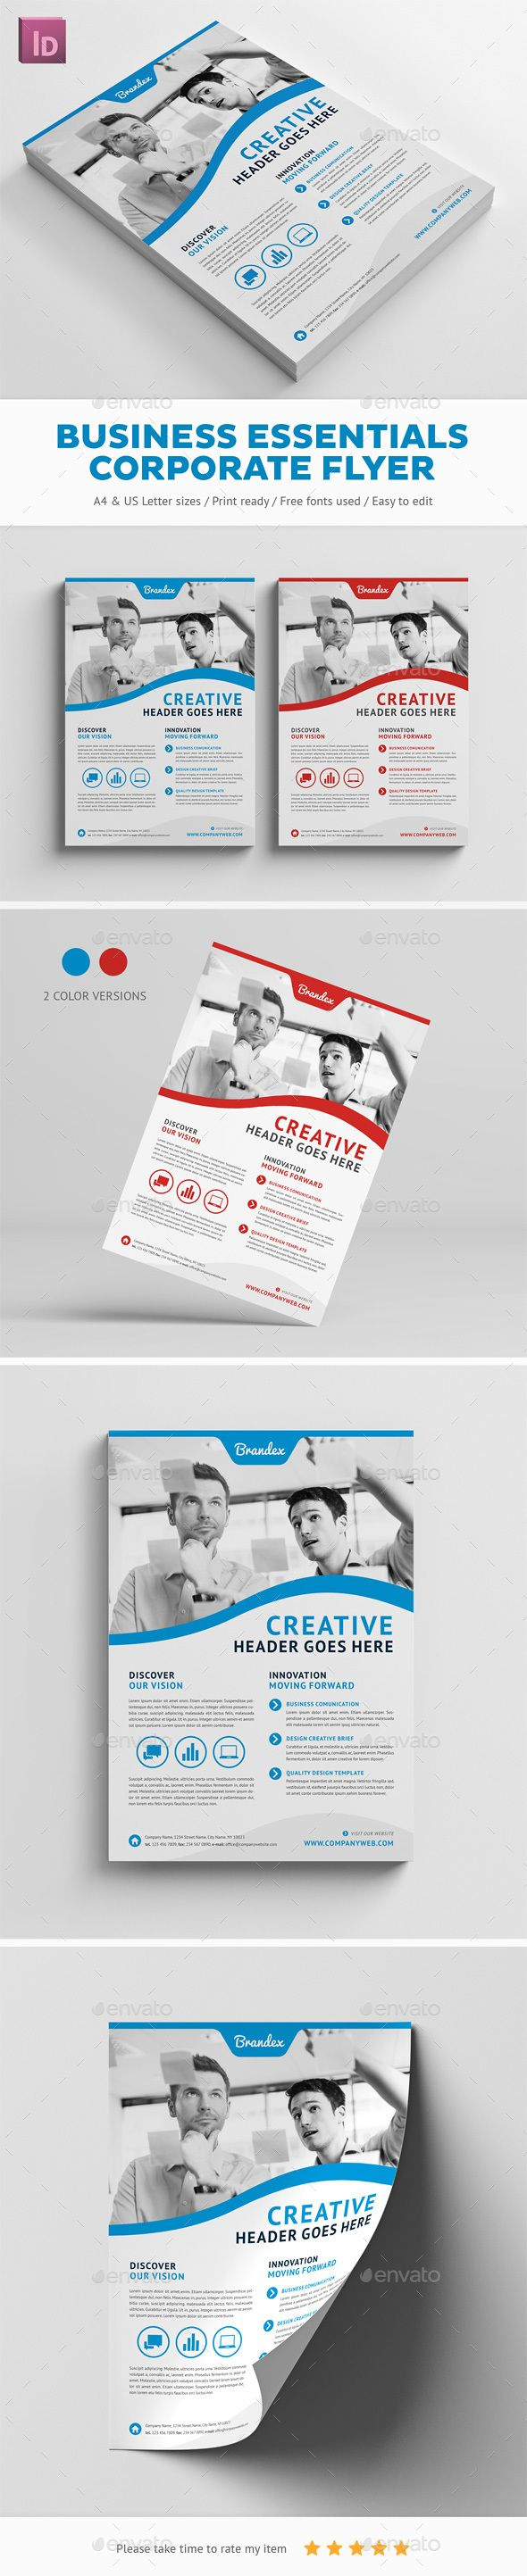 Business Essentials Corporate Flyer Template InDesign INDD #design Download: http://graphicriver.net/item/business-essentials-corporate-flyer/14415090?ref=ksioks